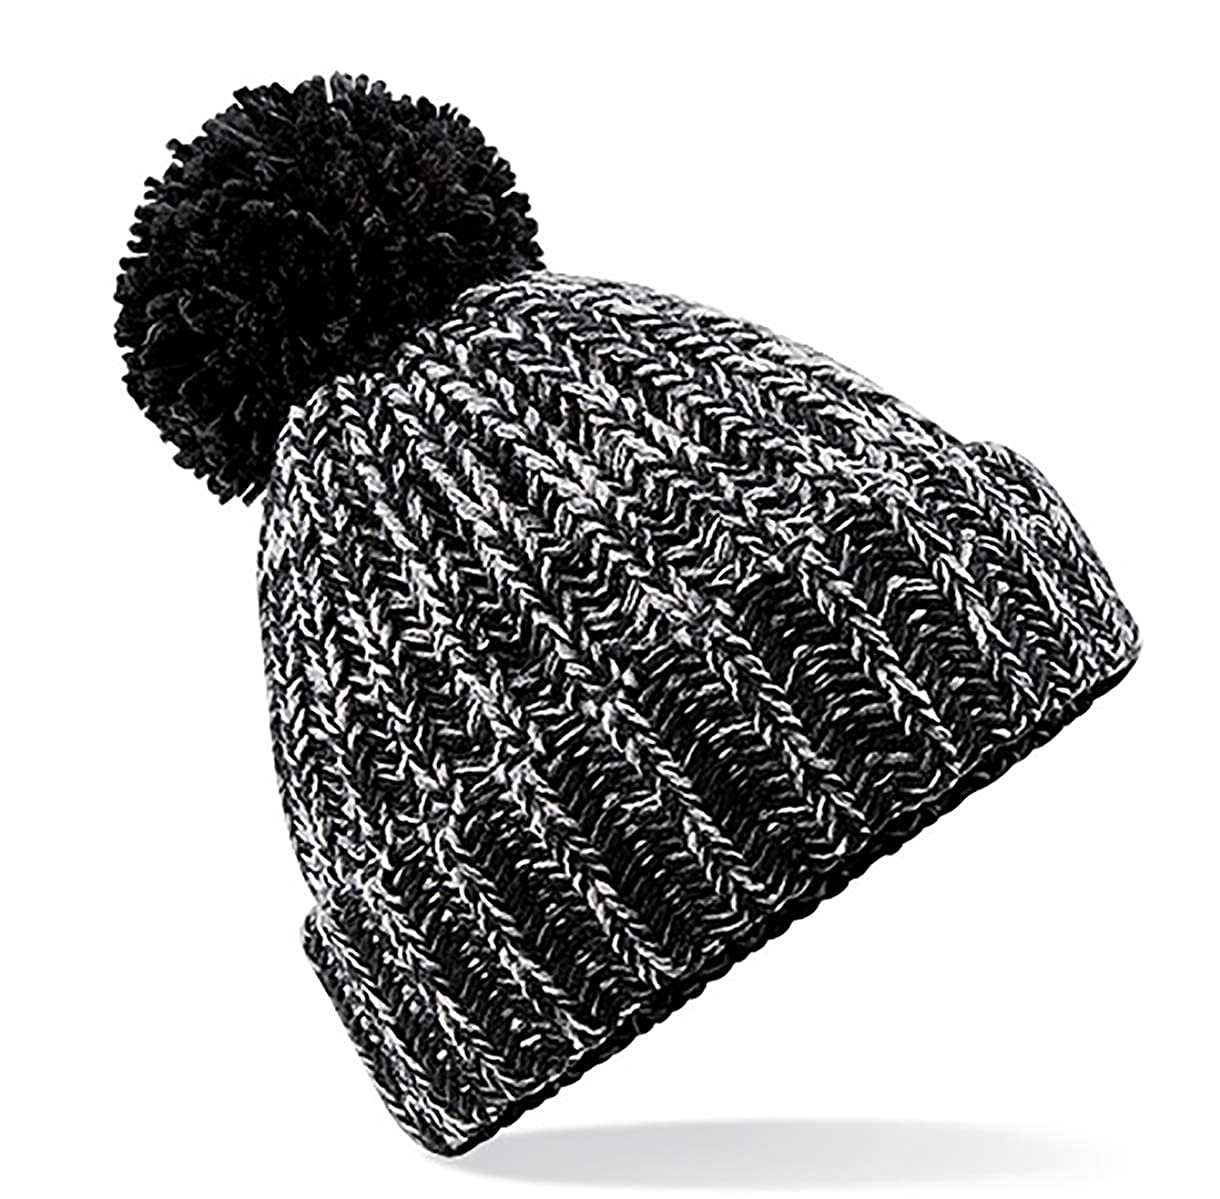 ad734d5e326 4sold Mens Womens Beanie Warm Winter Corkscrew Cable Knitted Bobble Hat  Plain Ski Pom Wooly Cap (One Size